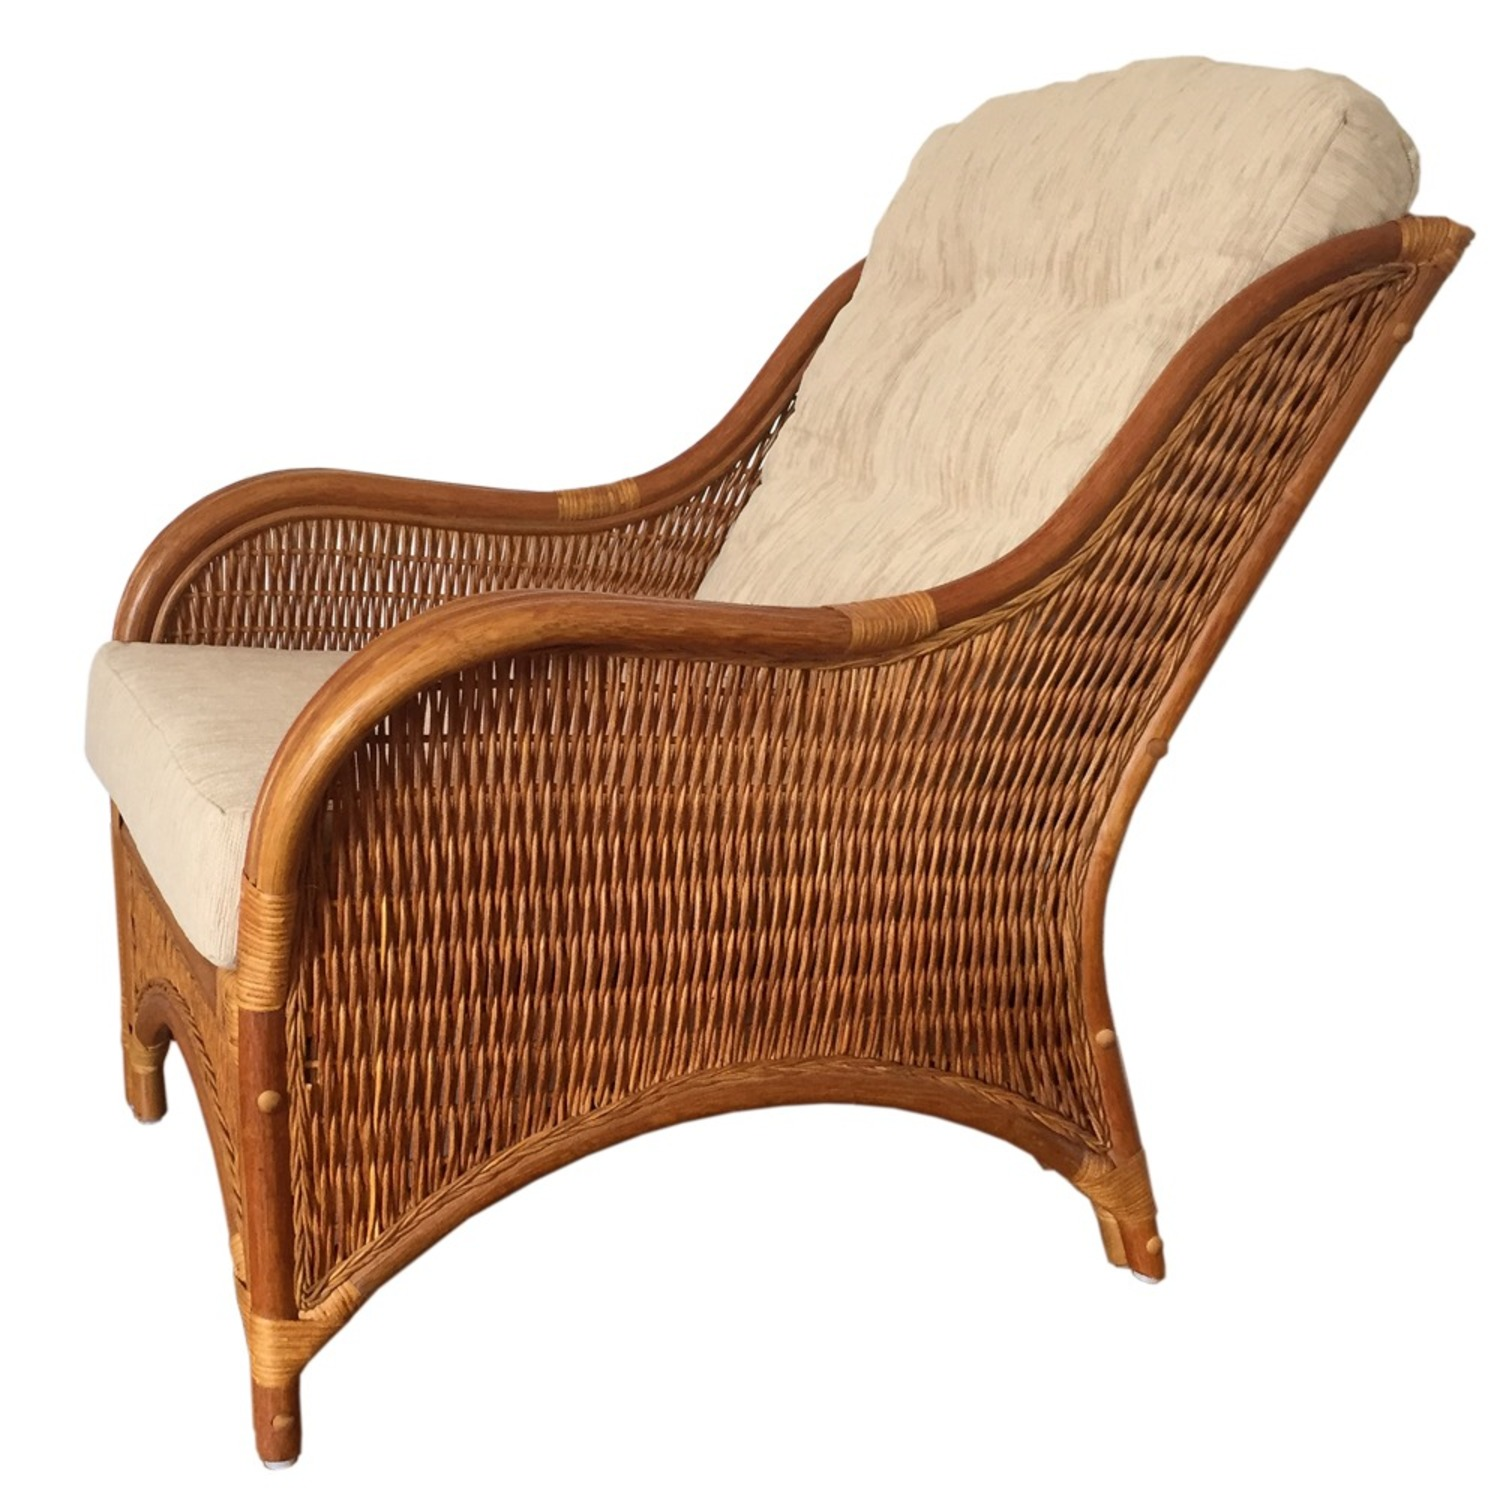 Karmen Light Brown Rattan Lounge Chair - image-2